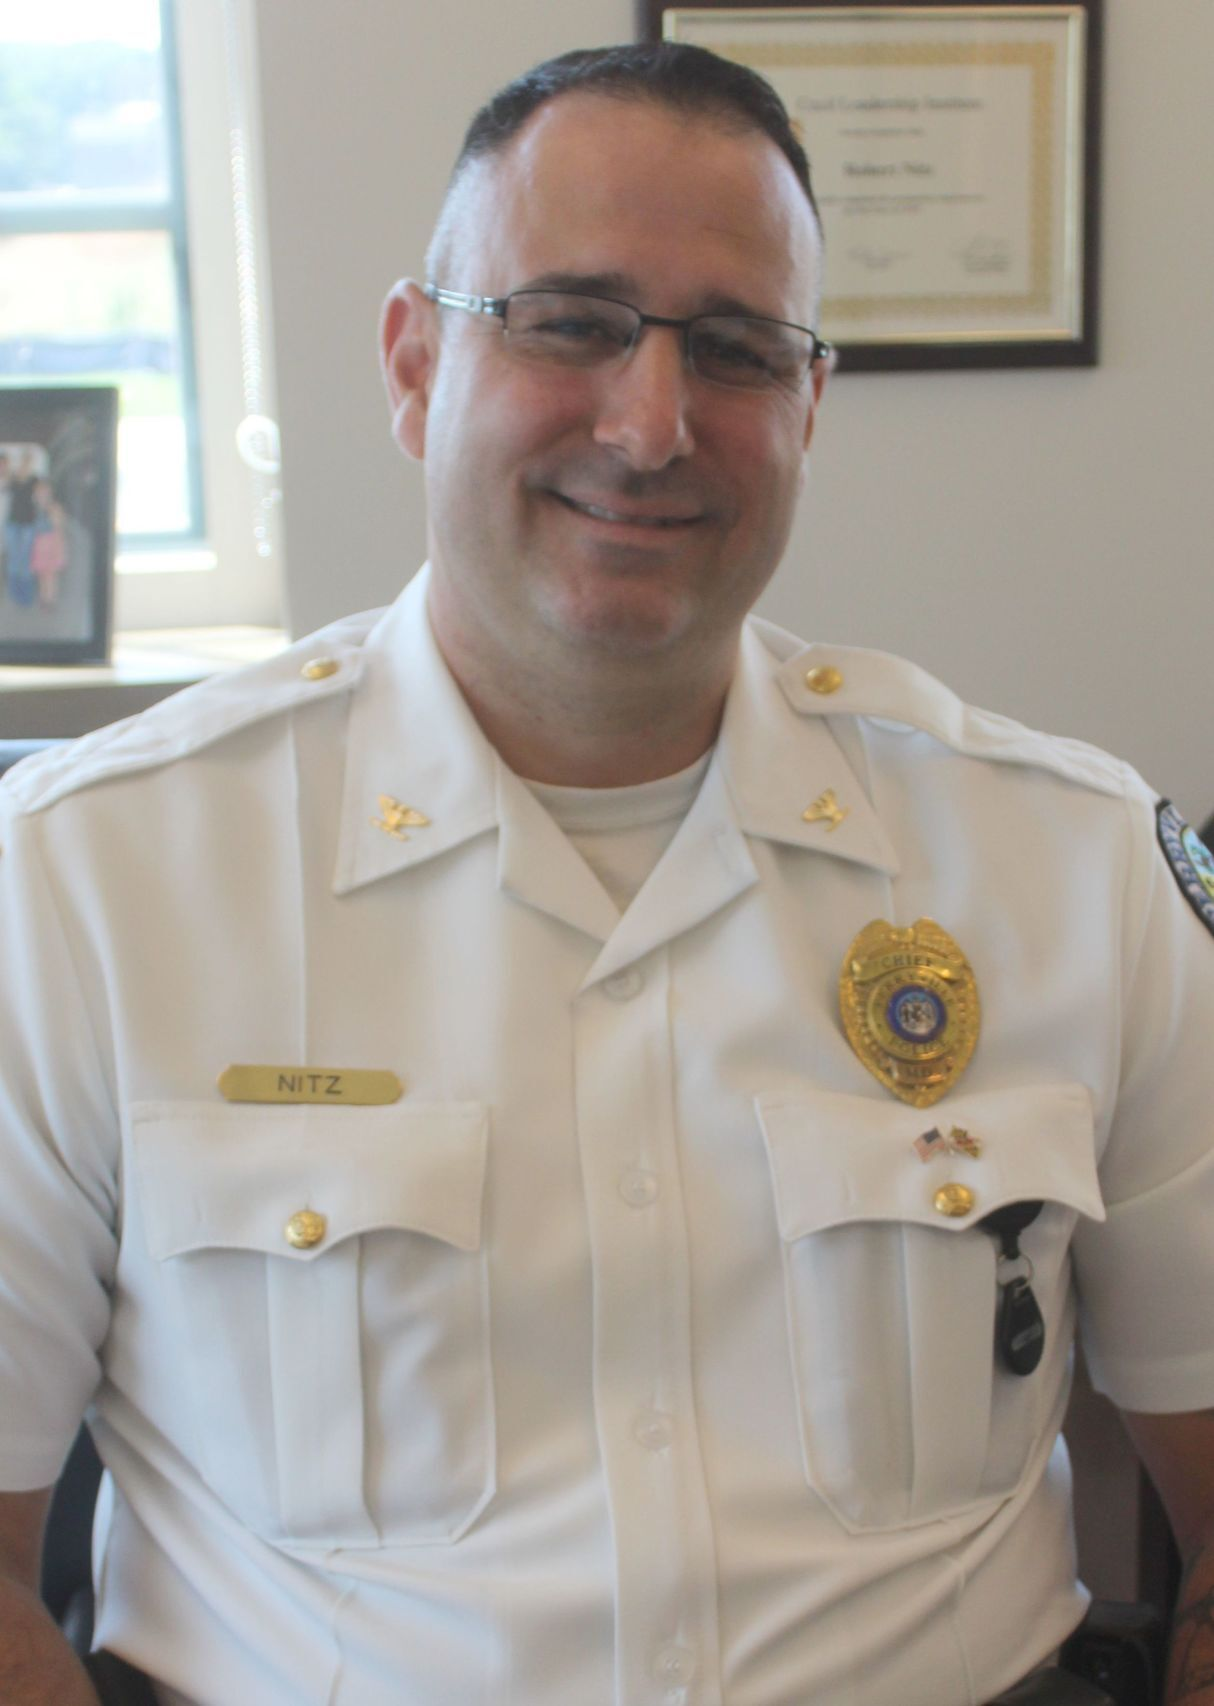 Chief Robert Nitz plans to continue community policing in Perryville